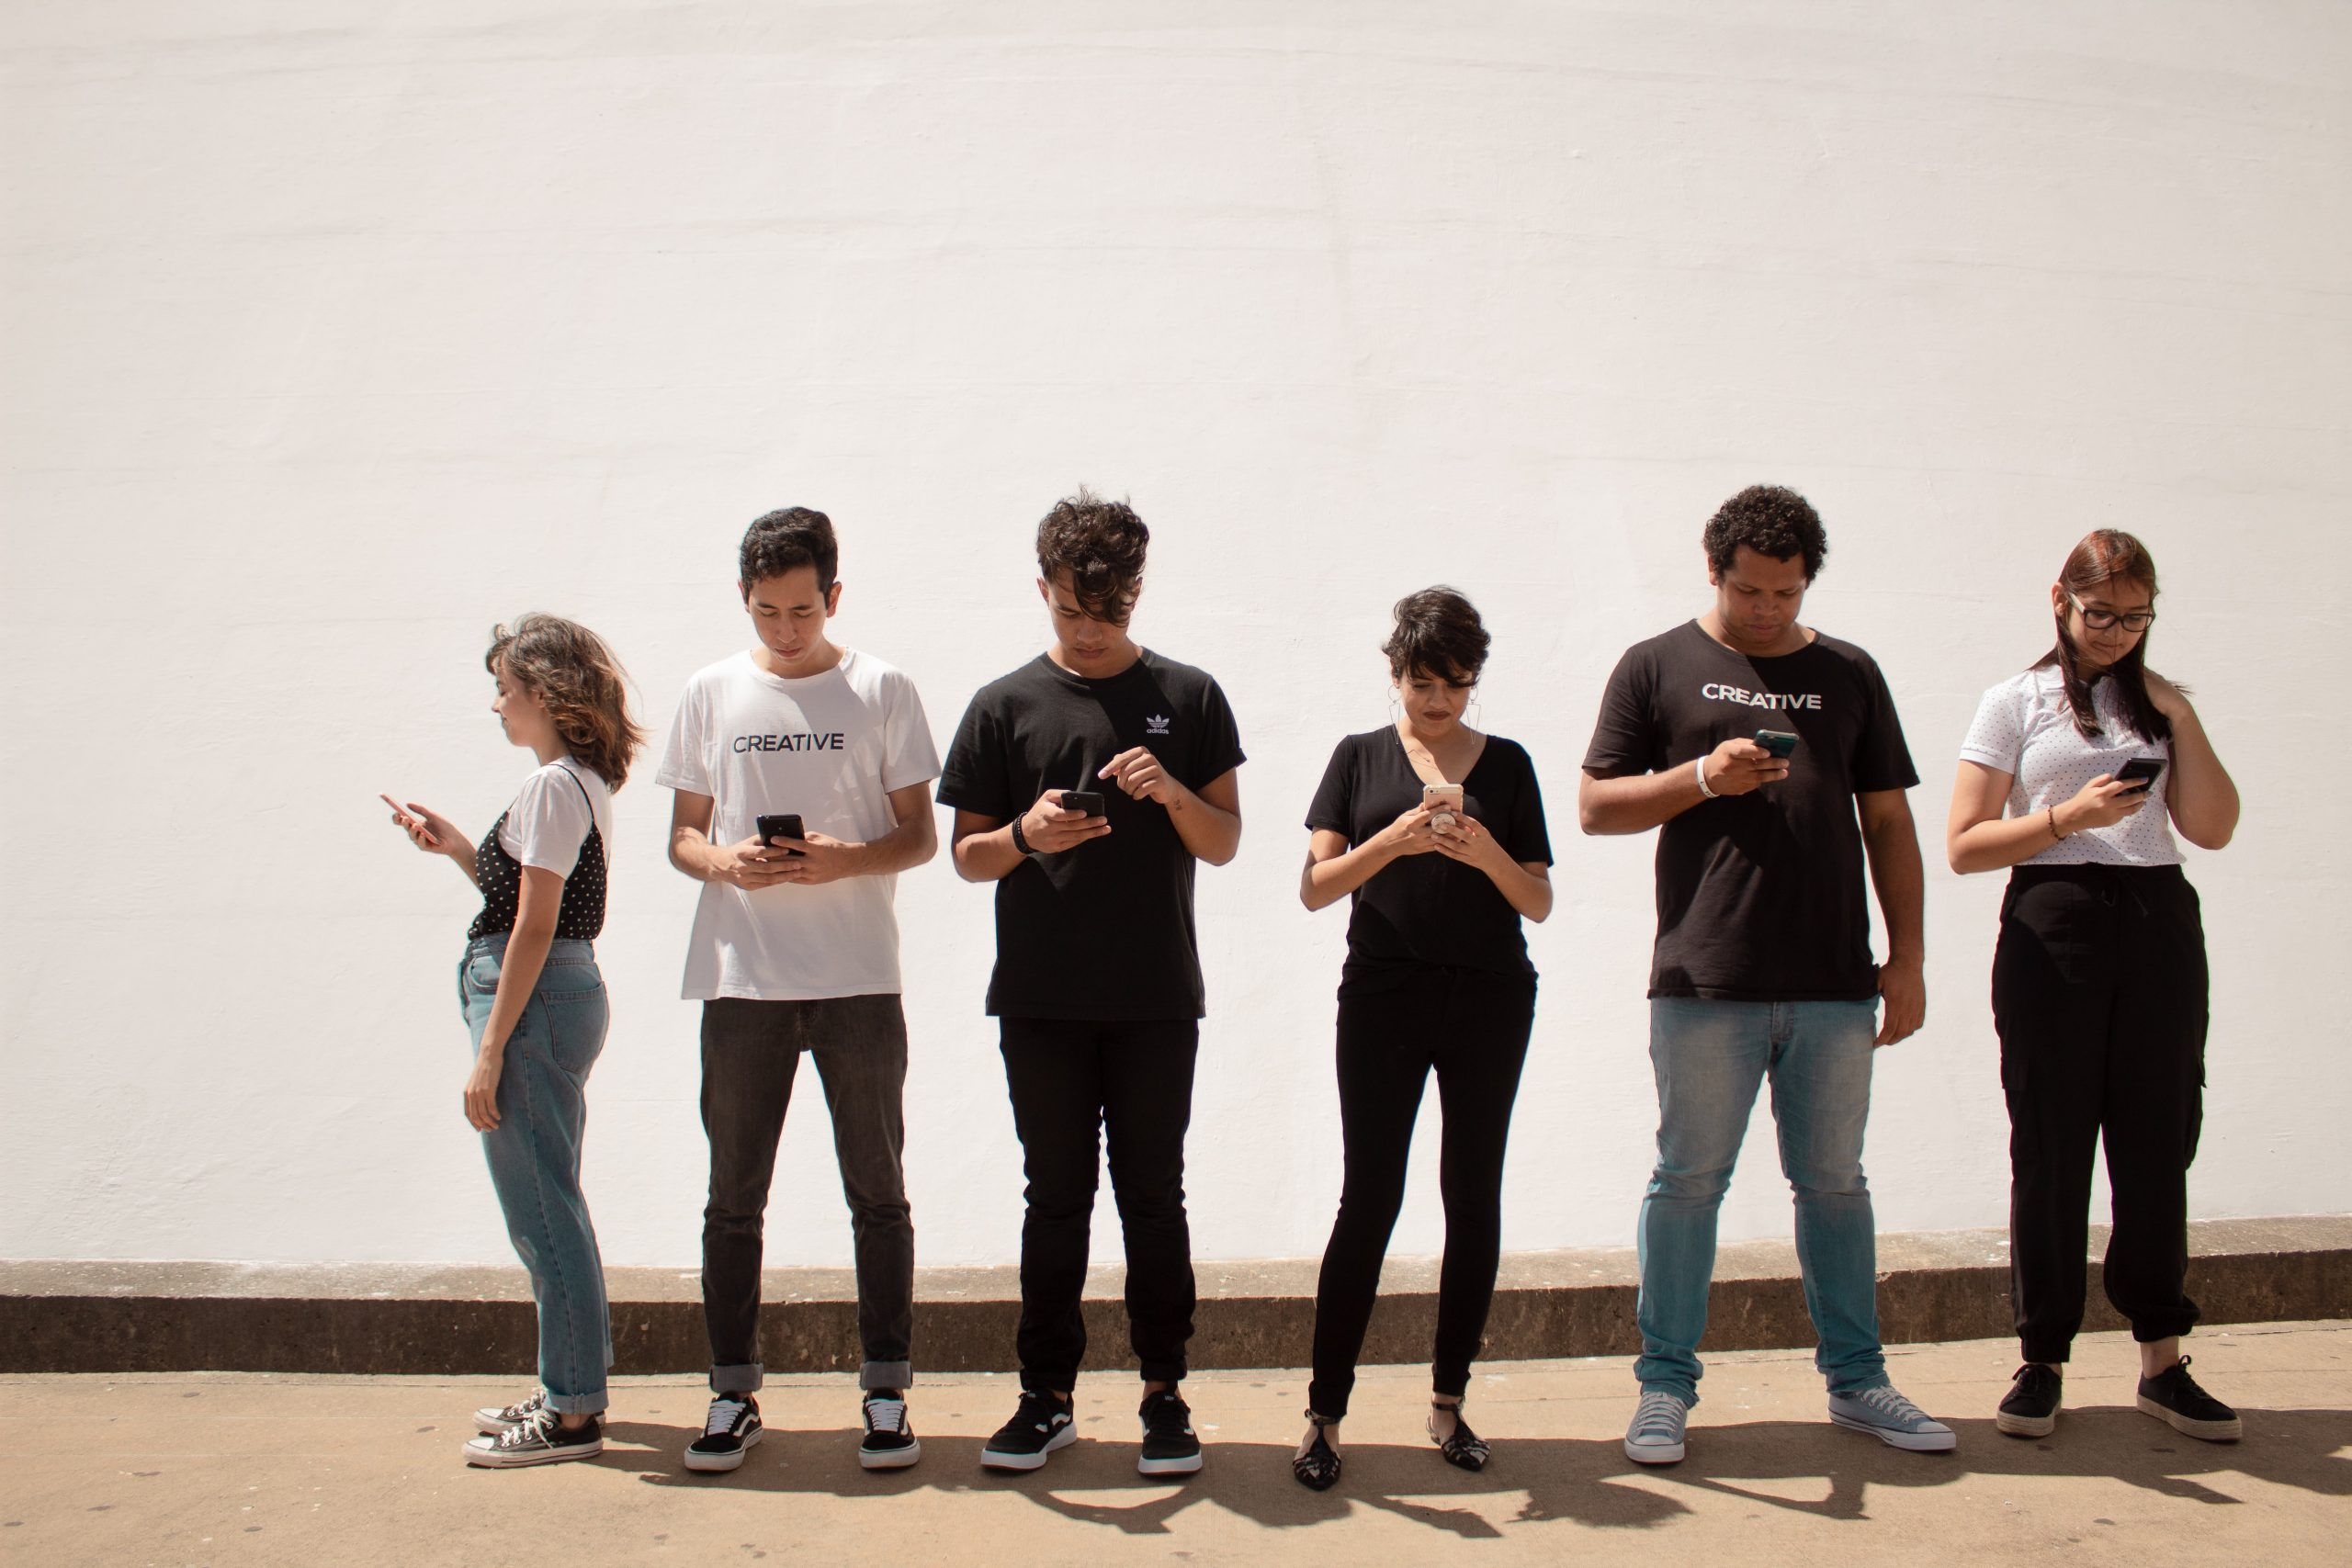 A group of young people stand against a white wall, they are all looking at their phones.